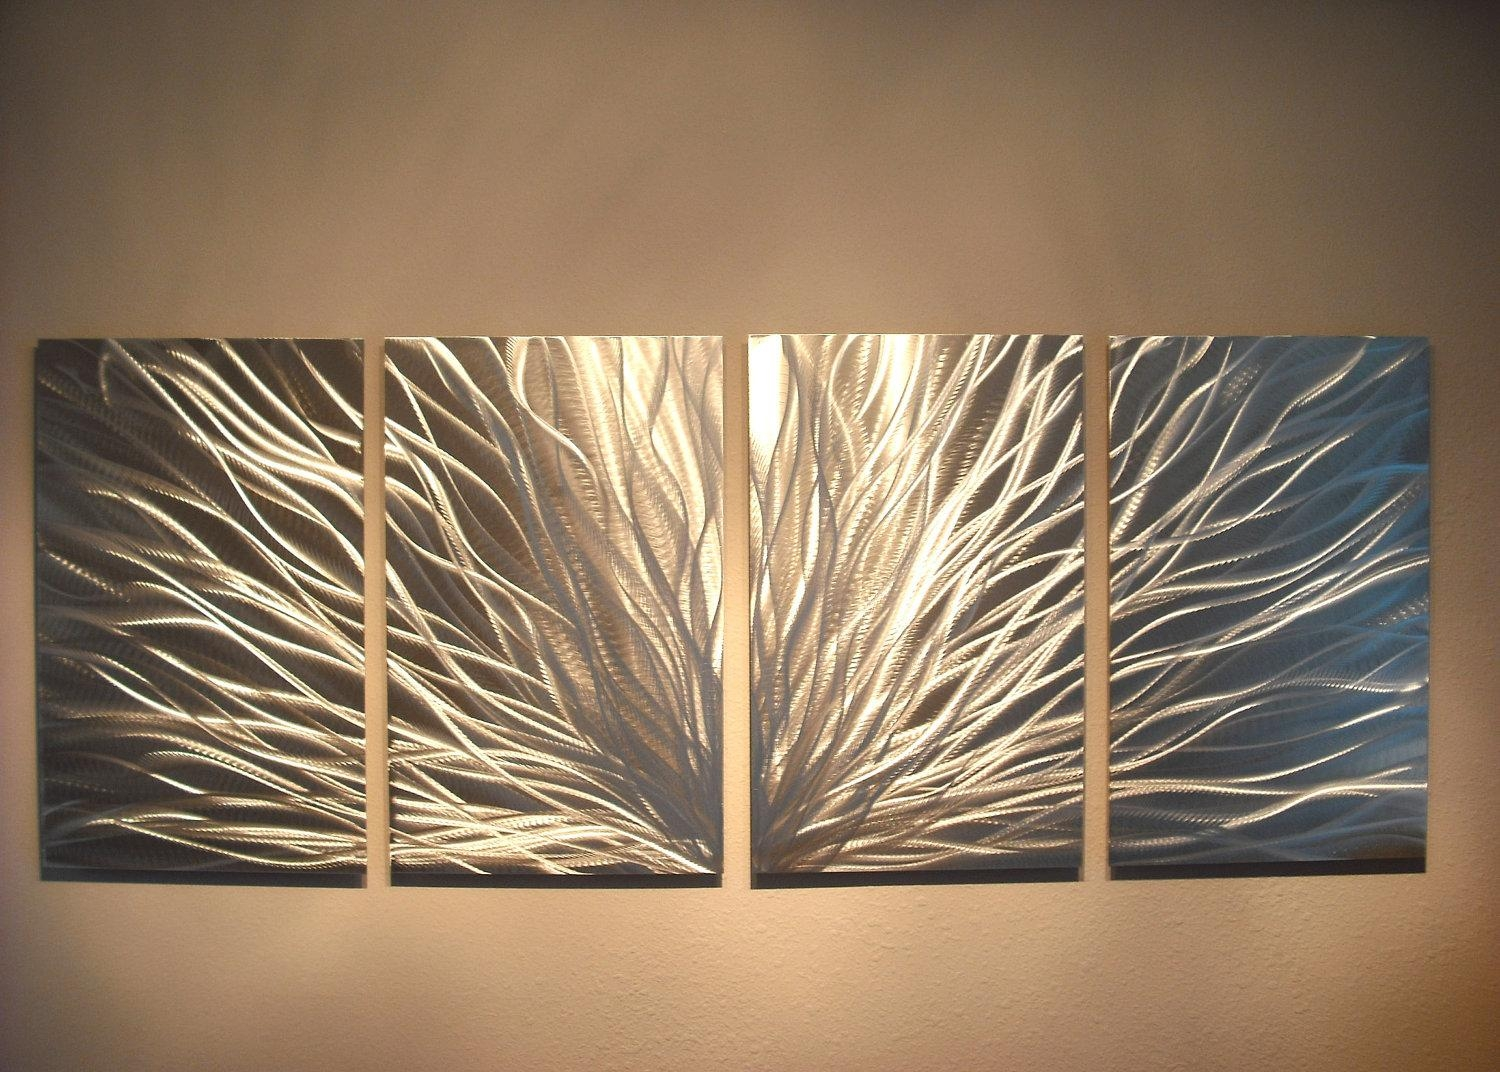 Metal Wall Art Decor Abstract Aluminum Contemporary Modern With Regard To Large Abstract Metal Wall Art (Image 14 of 20)